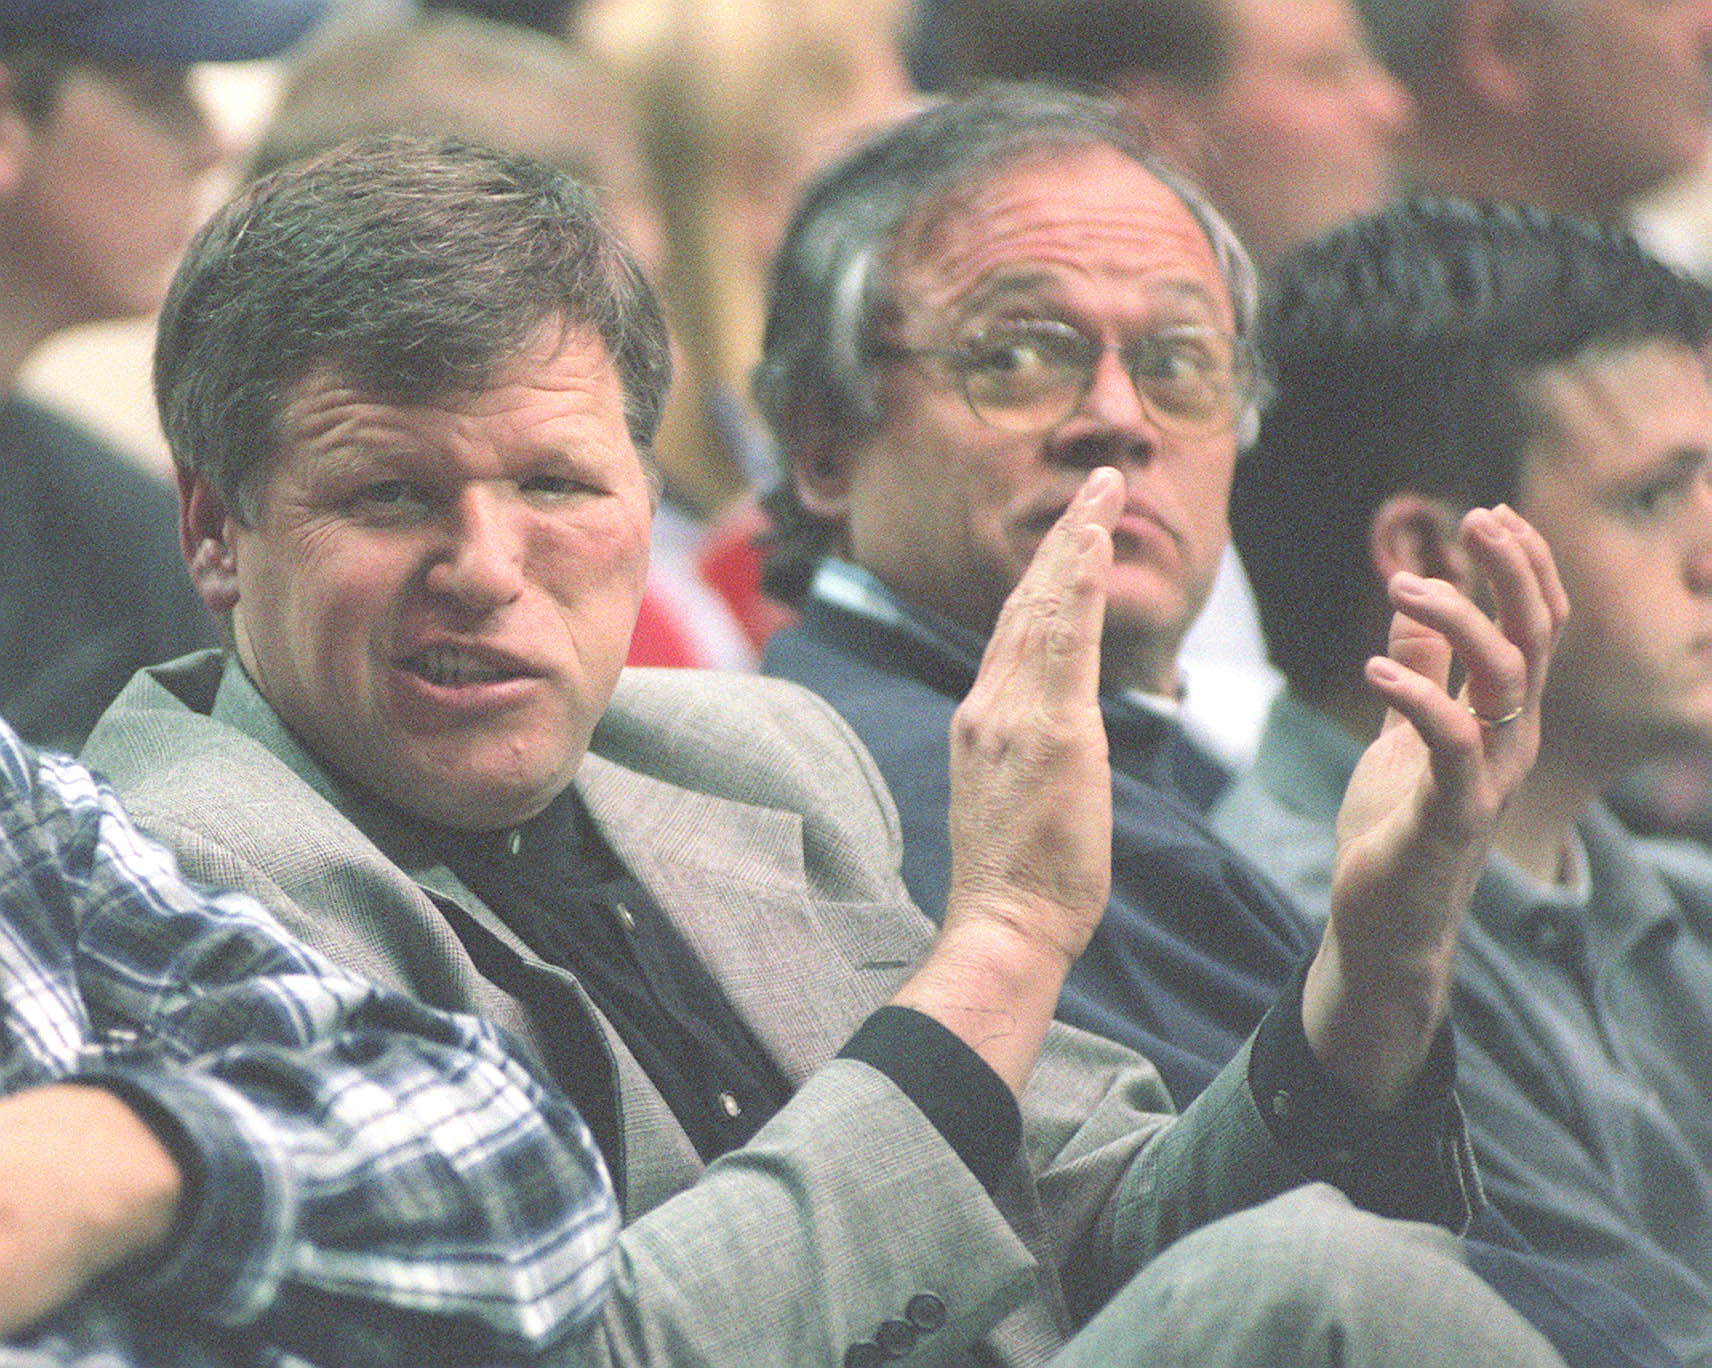 01.15.98 - Last year's interim coach Tony Ingle takes in the BYU game against Wyoming. PHOTO BY GARY MCKELLAR.